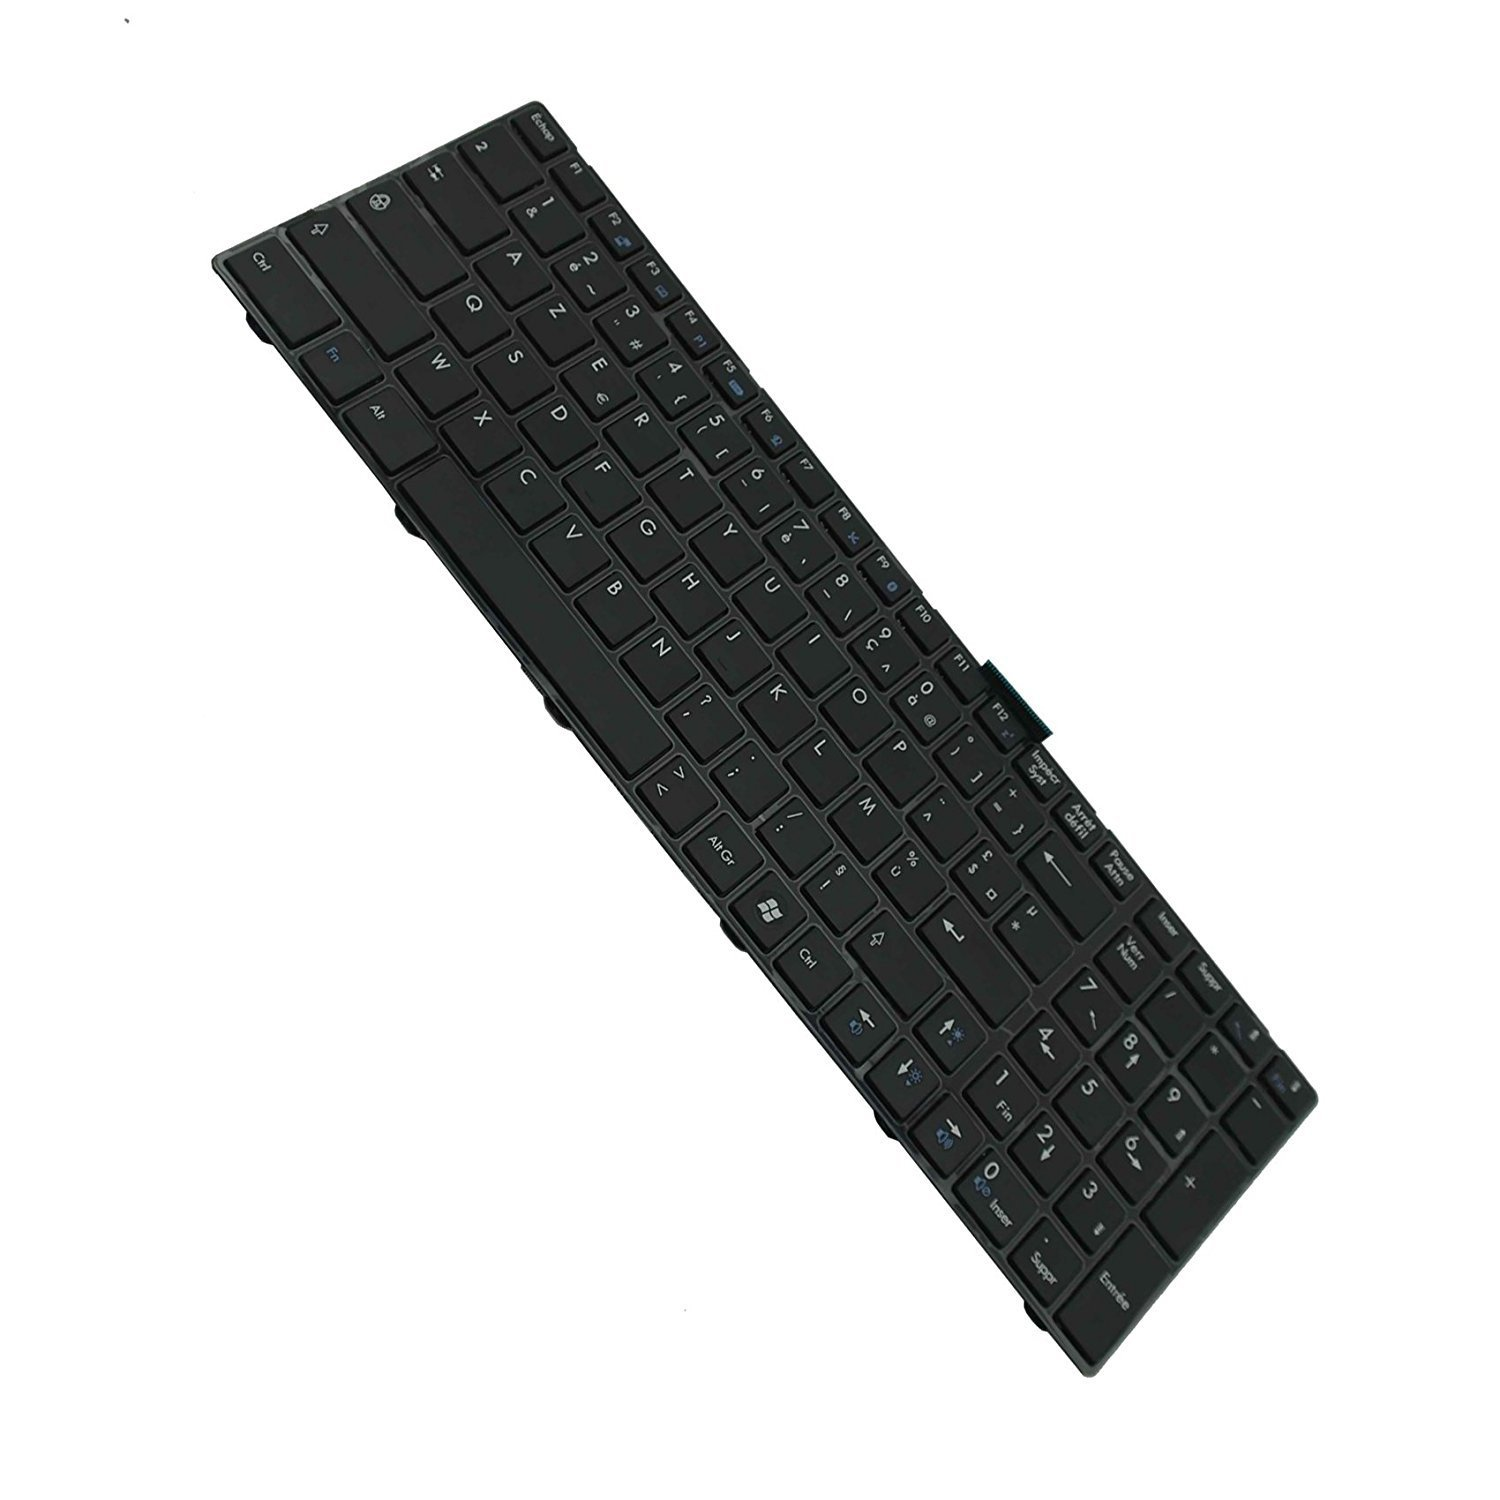 "YEECHUN Black FR French AZERTY Keyboard France Clavier For MSI A6200 15.6"" Series New Notebook Replacement Accessories"